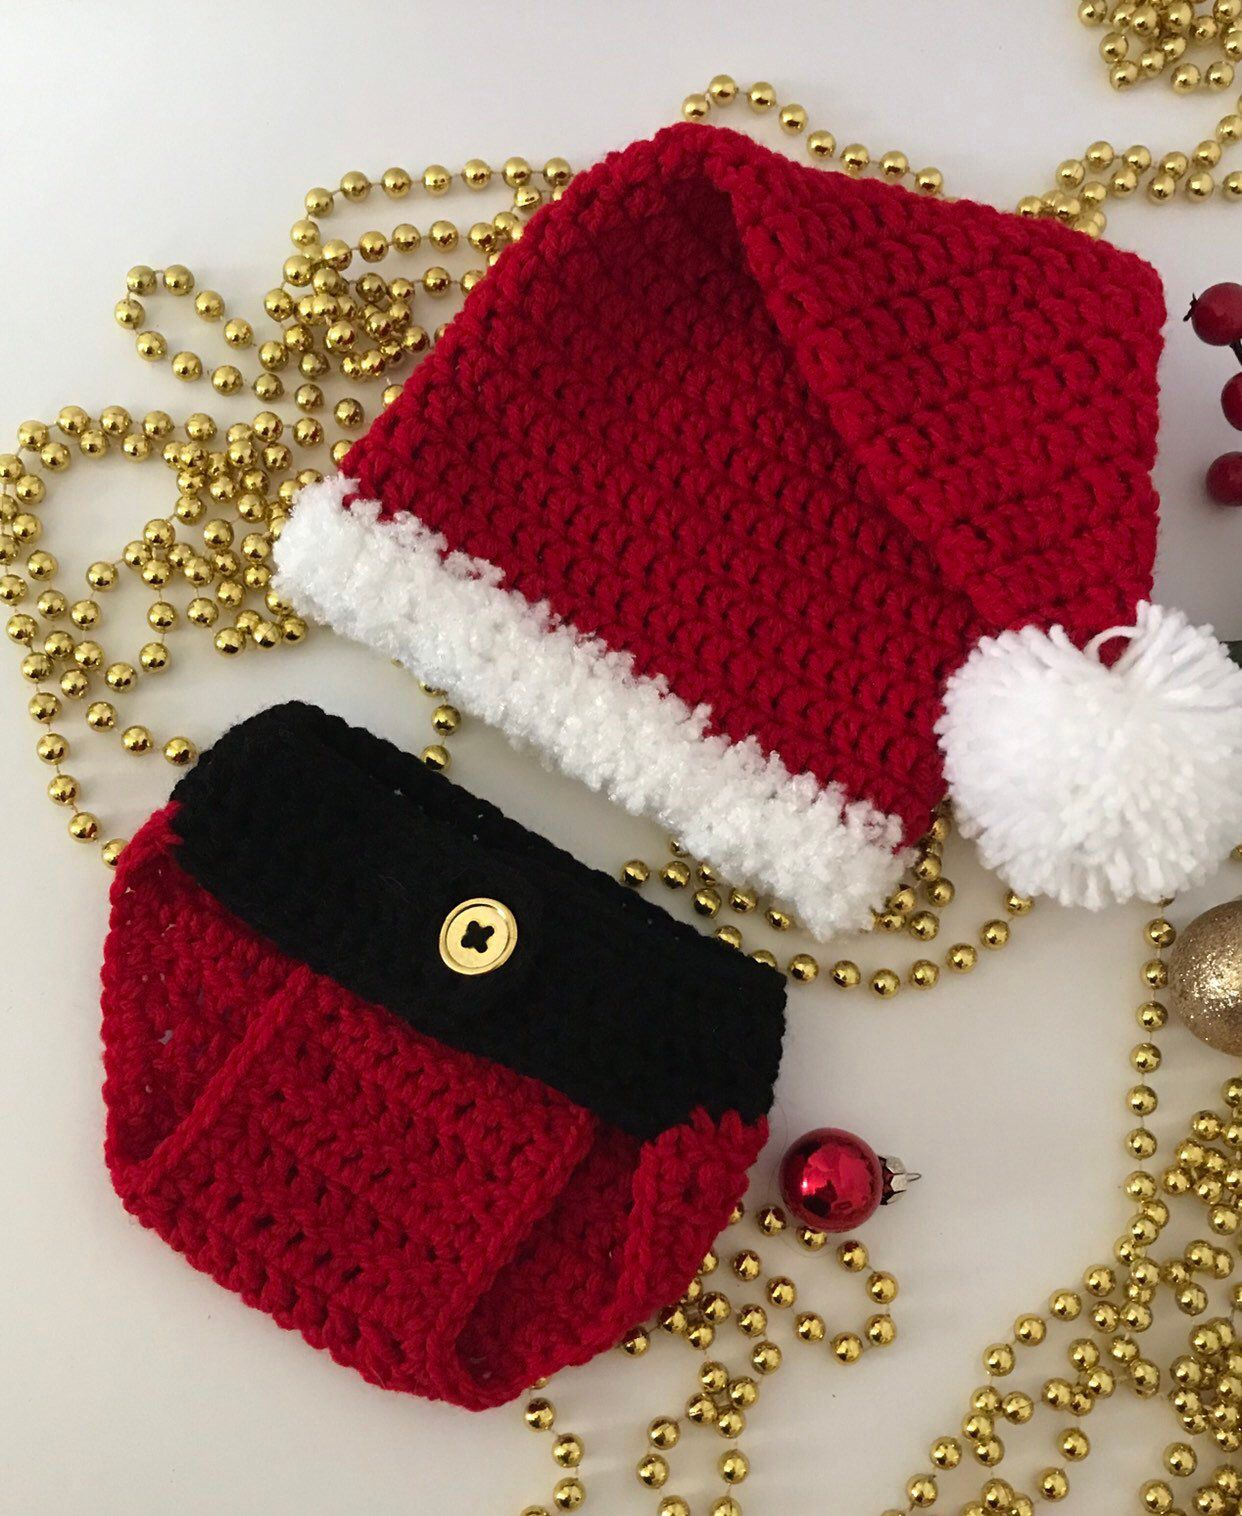 e95e7d5c563 Excited to share this item from my  etsy shop  Crochet Santa Hat with  Diaper Cover